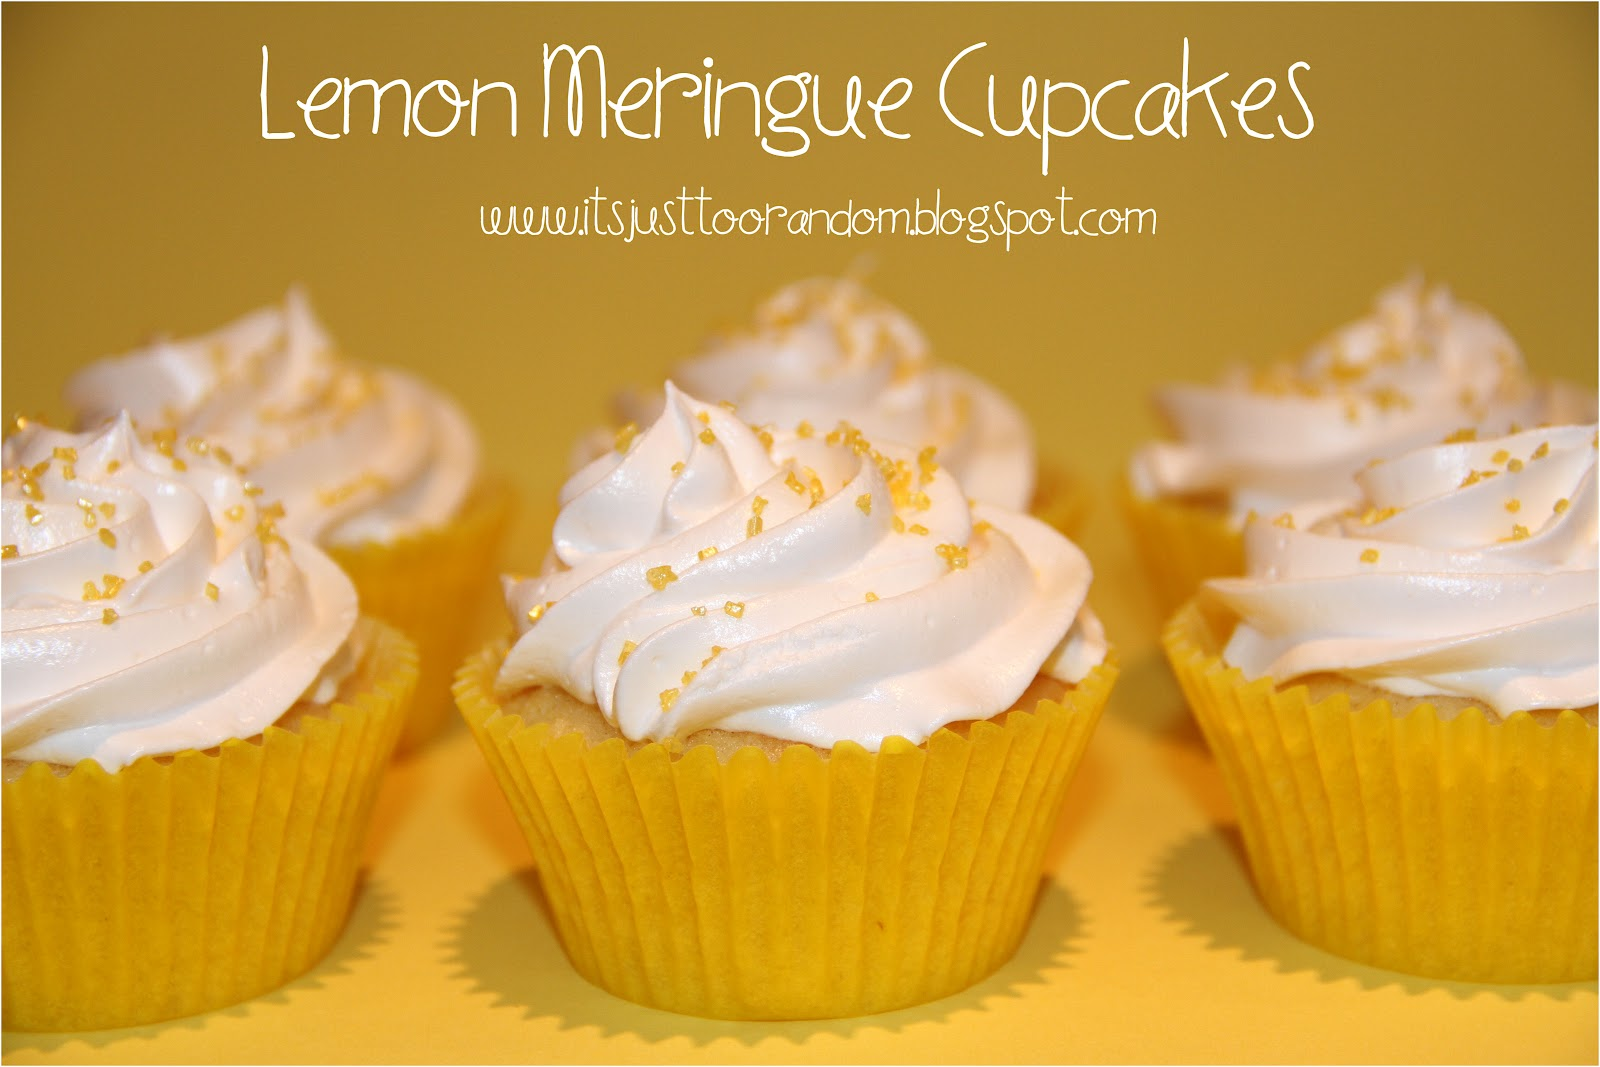 Lemon Meringue Cupcakes | HD Walls | Find Wallpapers